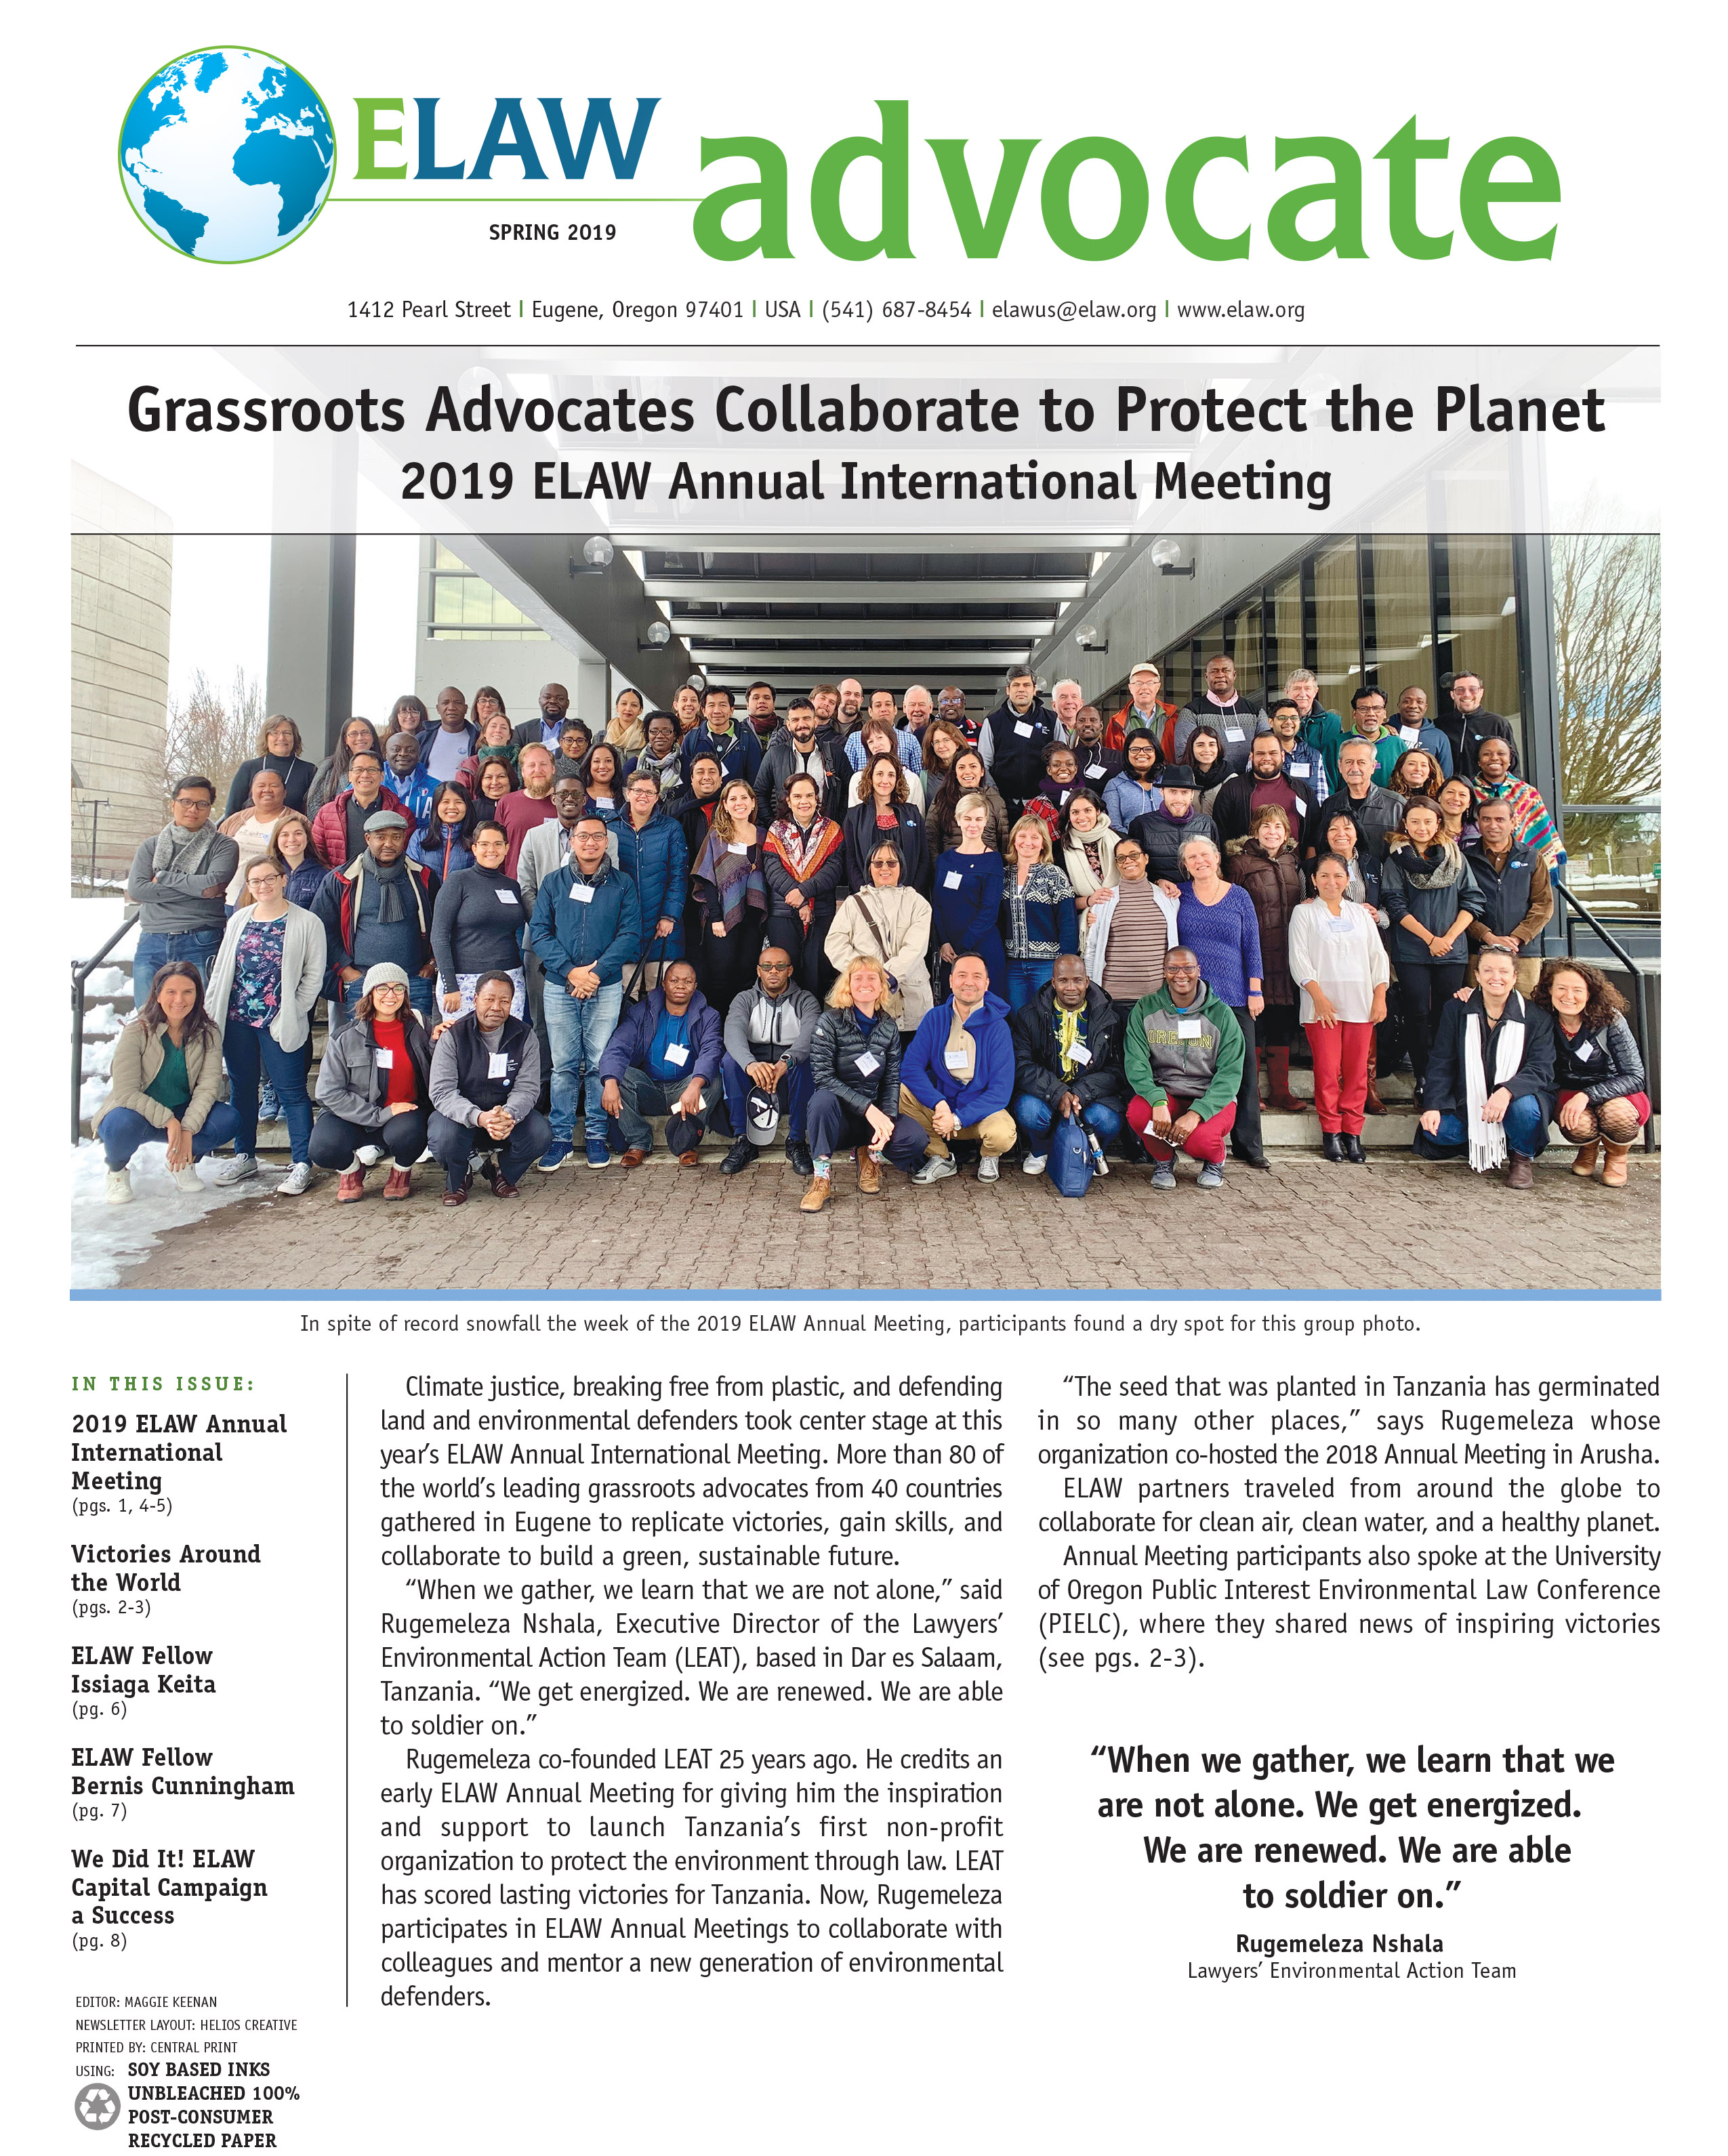 Grassroots Advocates Collaborate to Protect the Planet